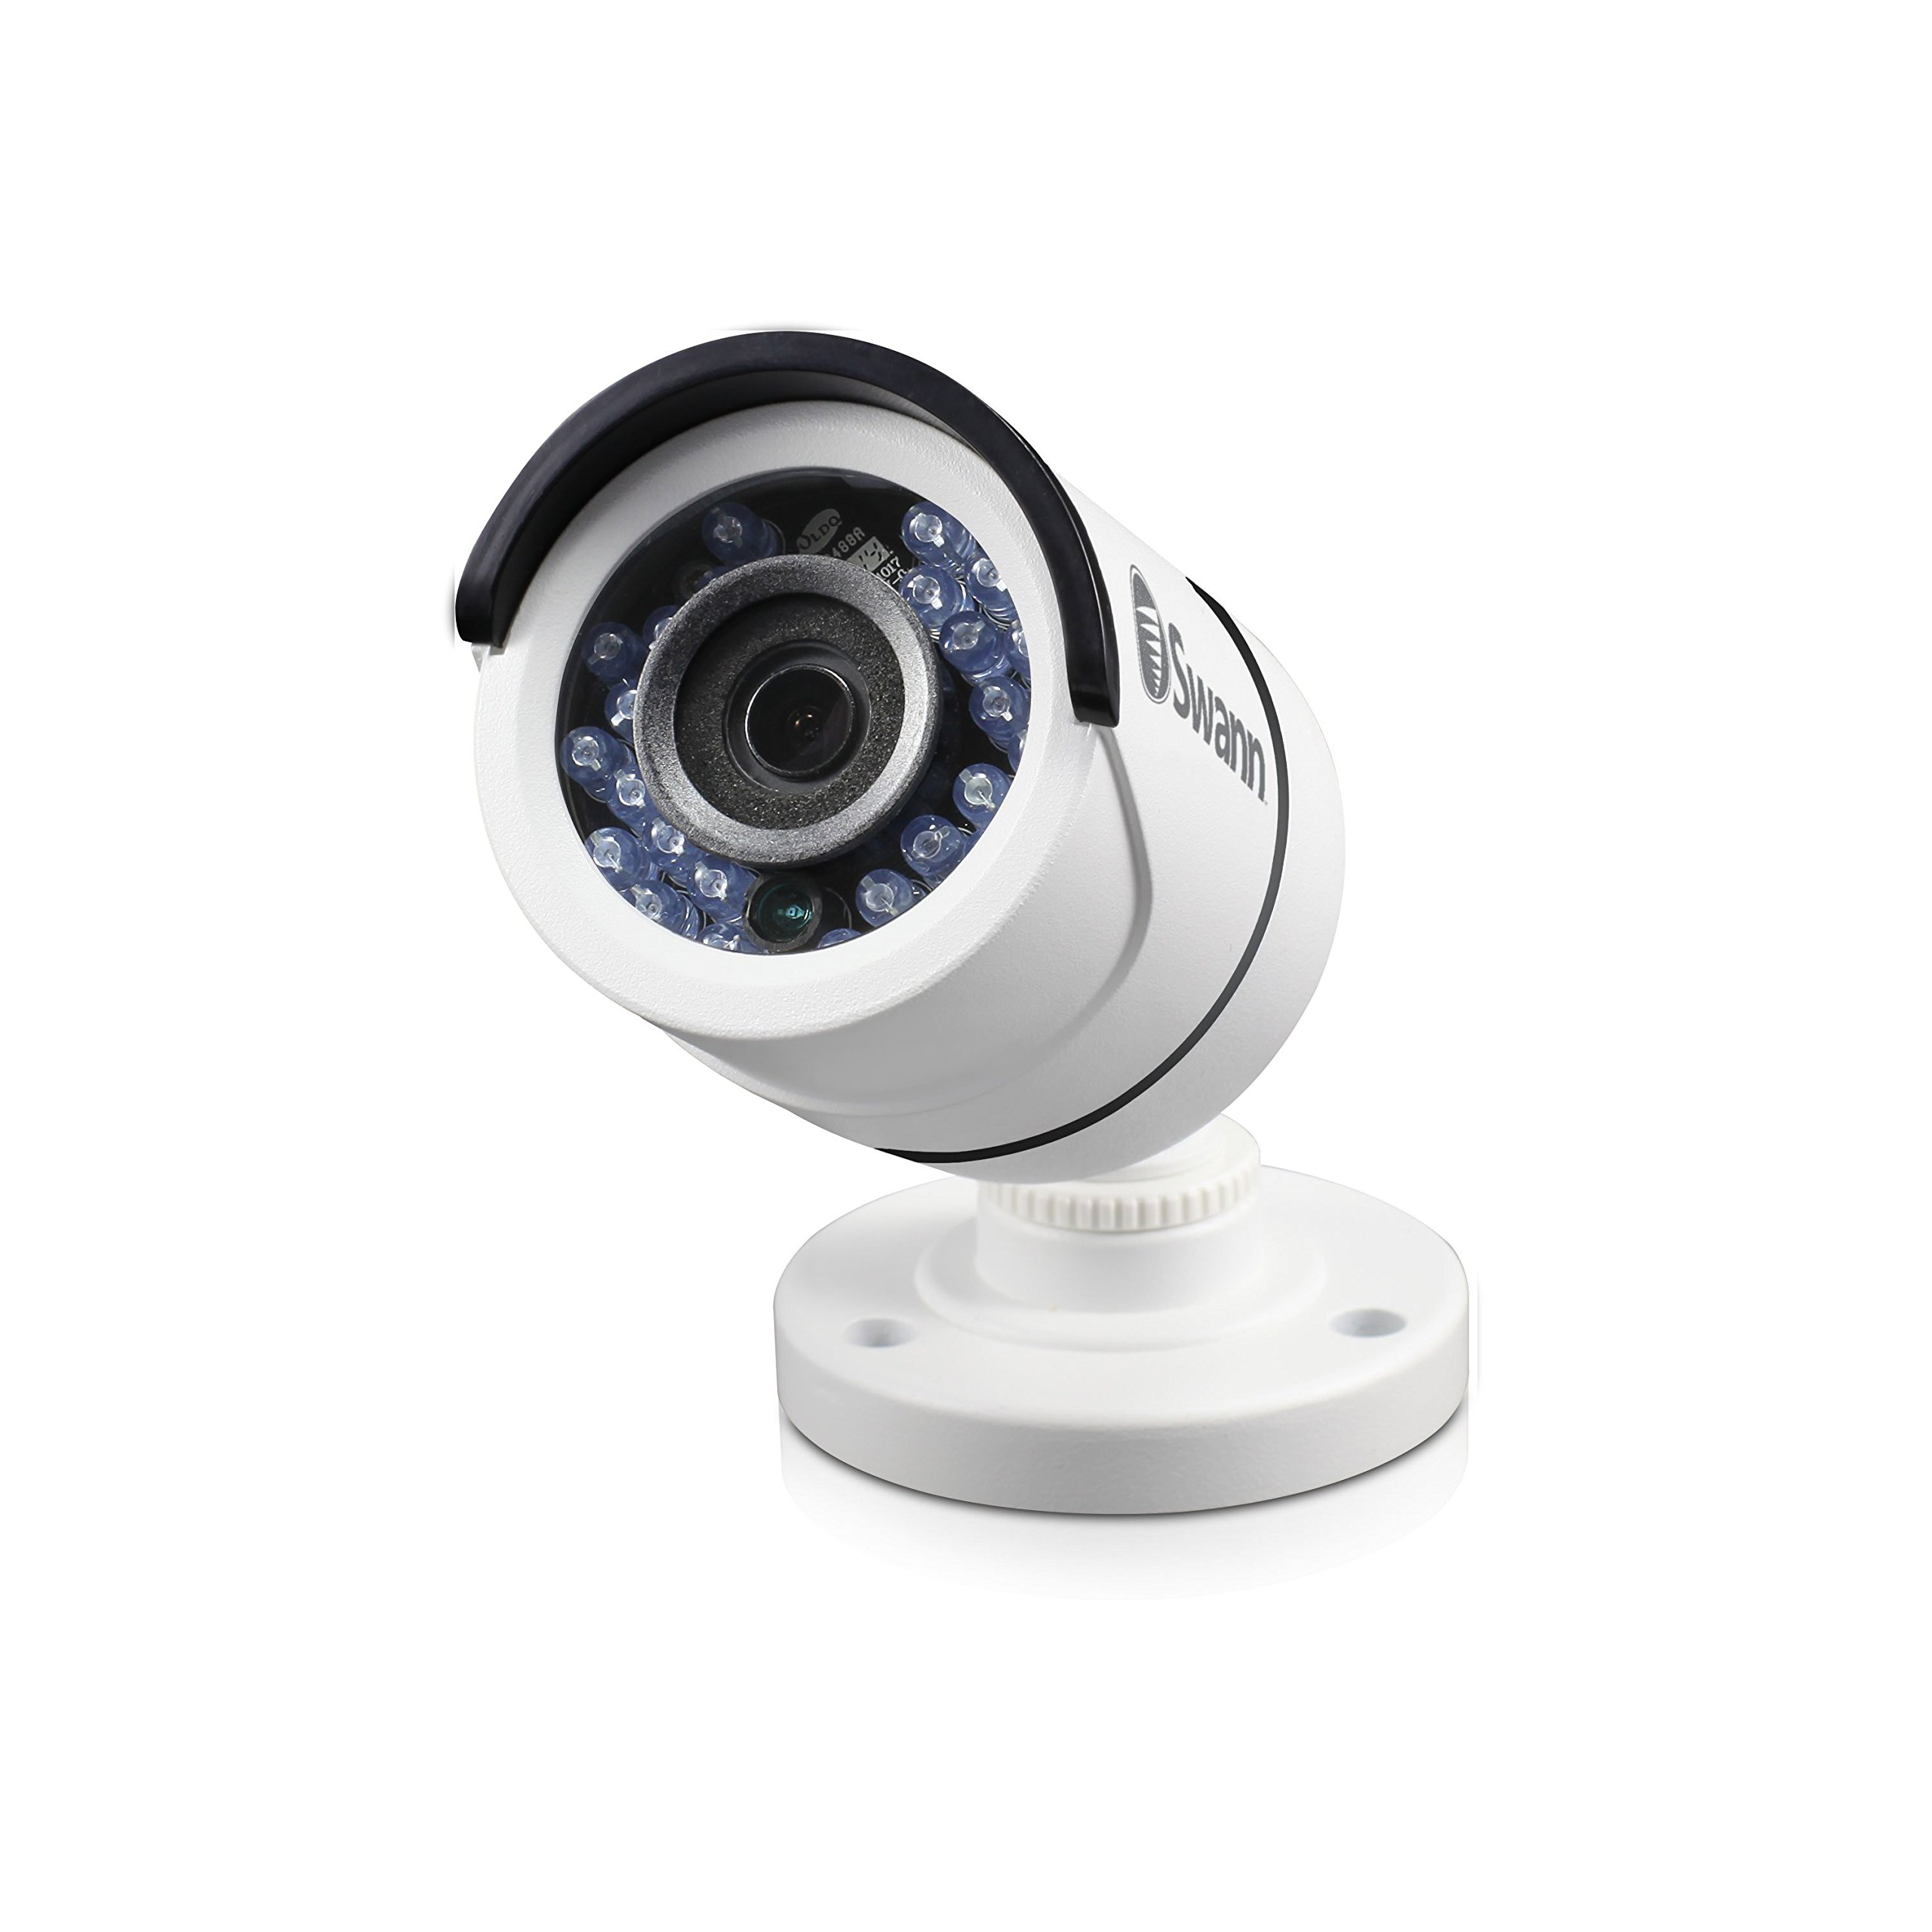 SWANN Cameras Surveillance System, White (SWPRO-T853CAM-US) PRO-T853 - 1080P Multi-Purpose Day/Night Security Camera - Night Vision 100ft / 30m by Swann